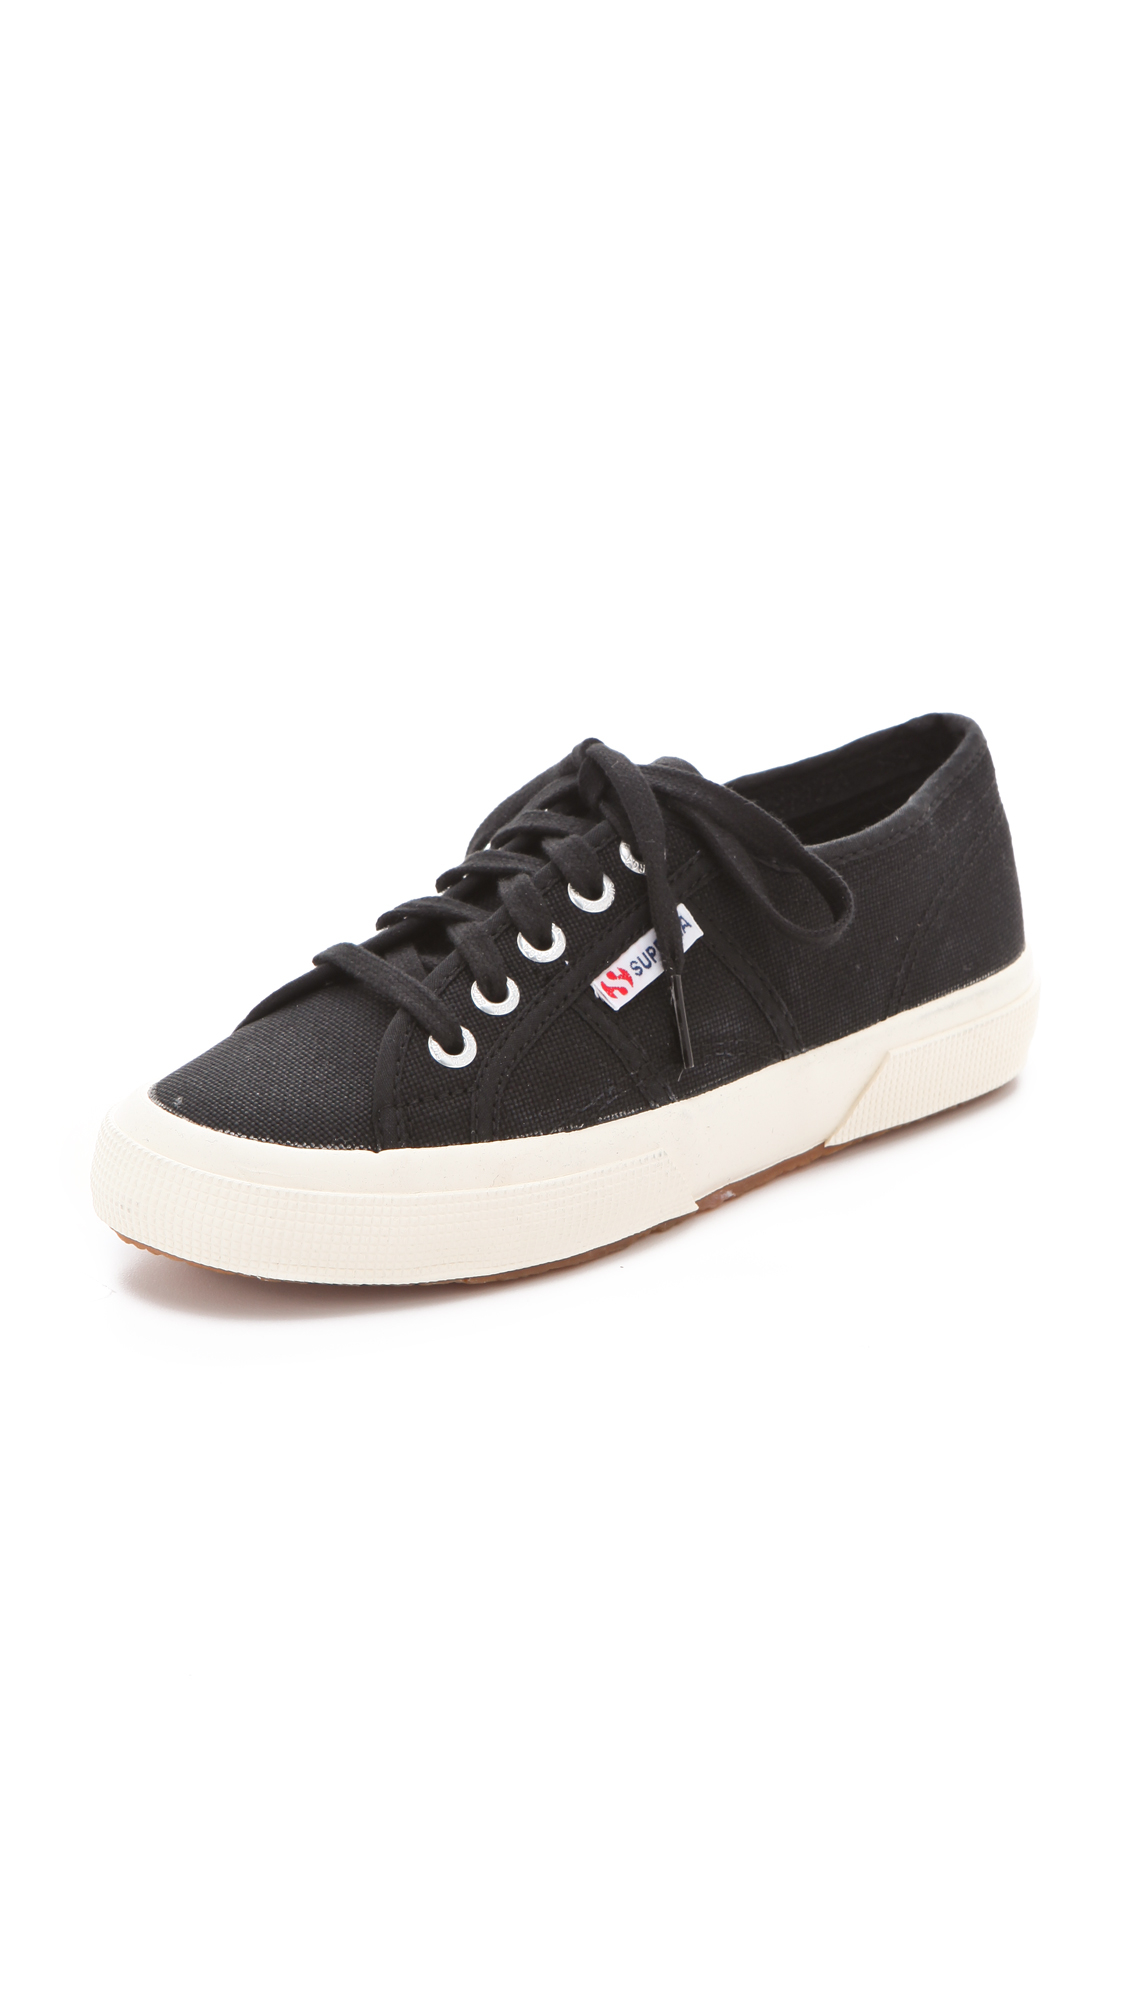 superga 2750 cotu classic sneakers in black lyst